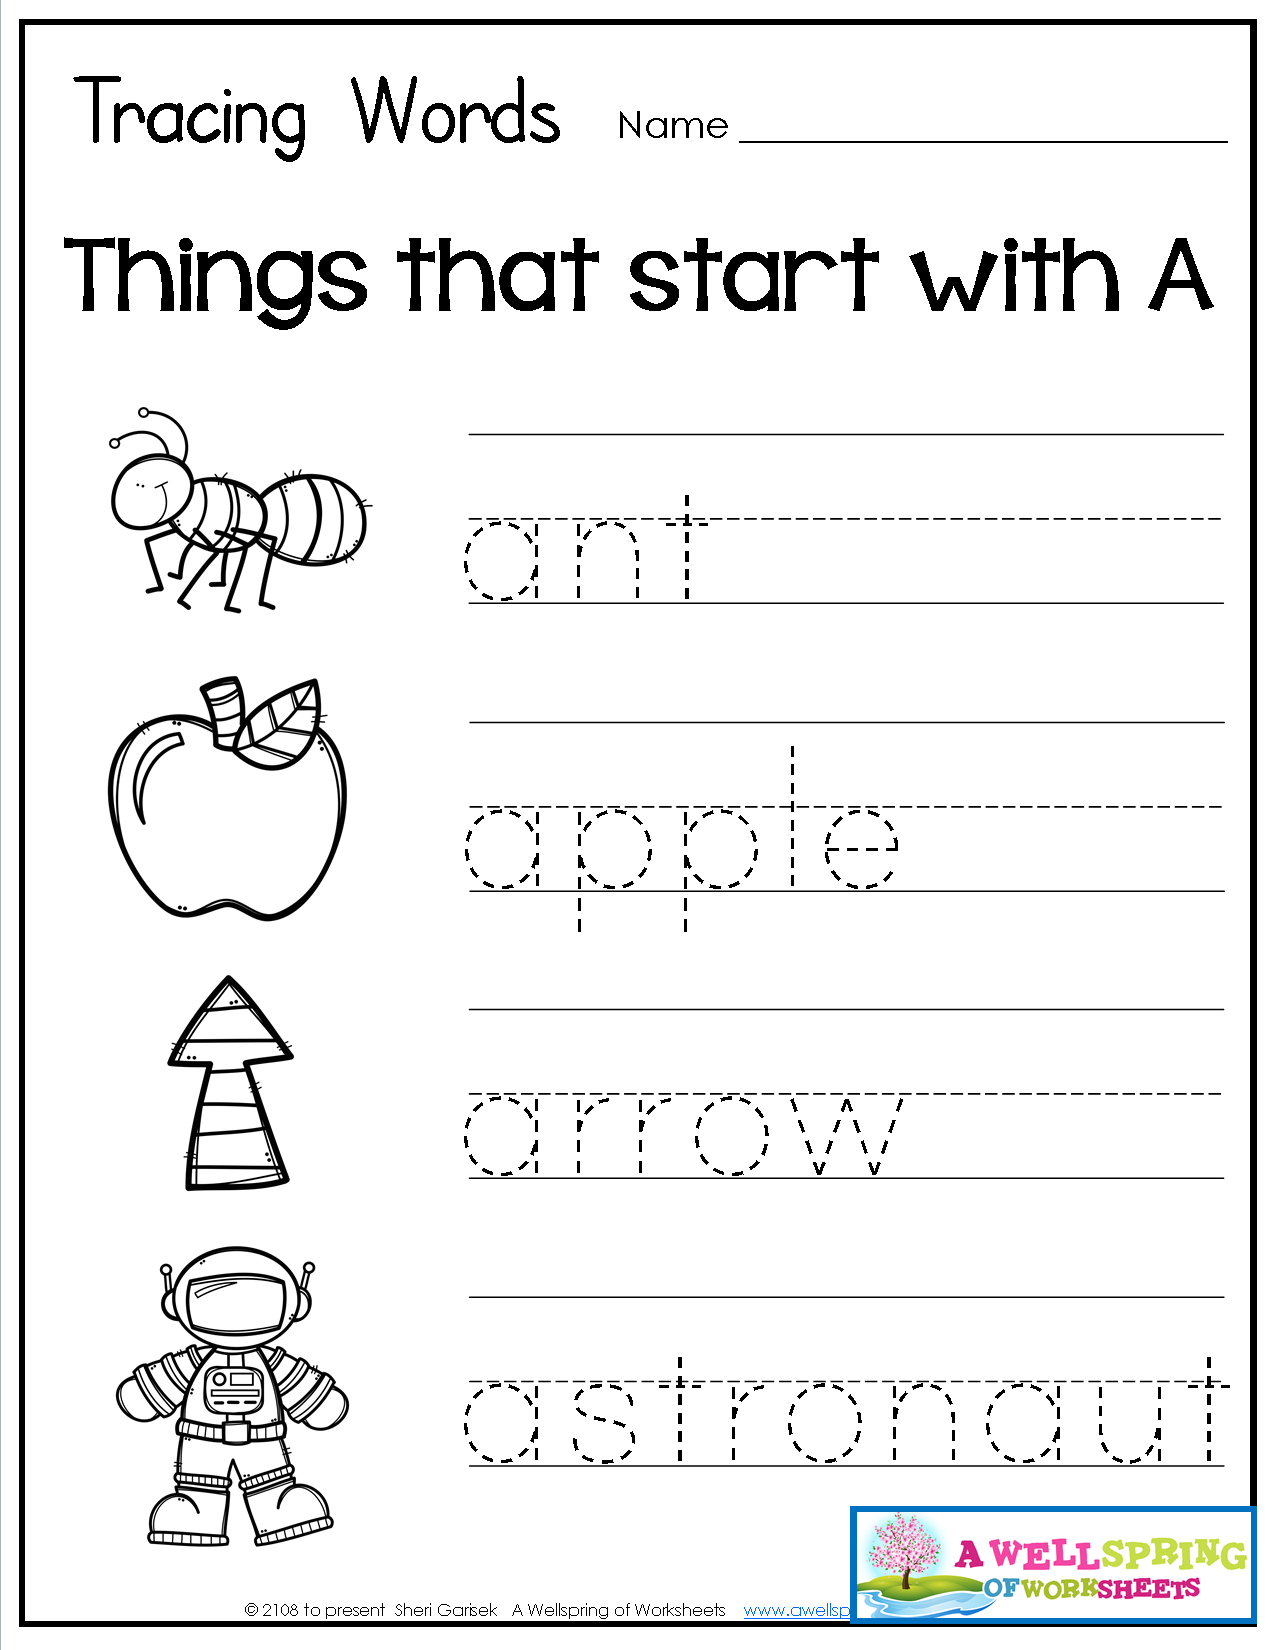 A To Z Name Tracing Worksheets | Alphabetworksheetsfree within Name Tracing A-Z